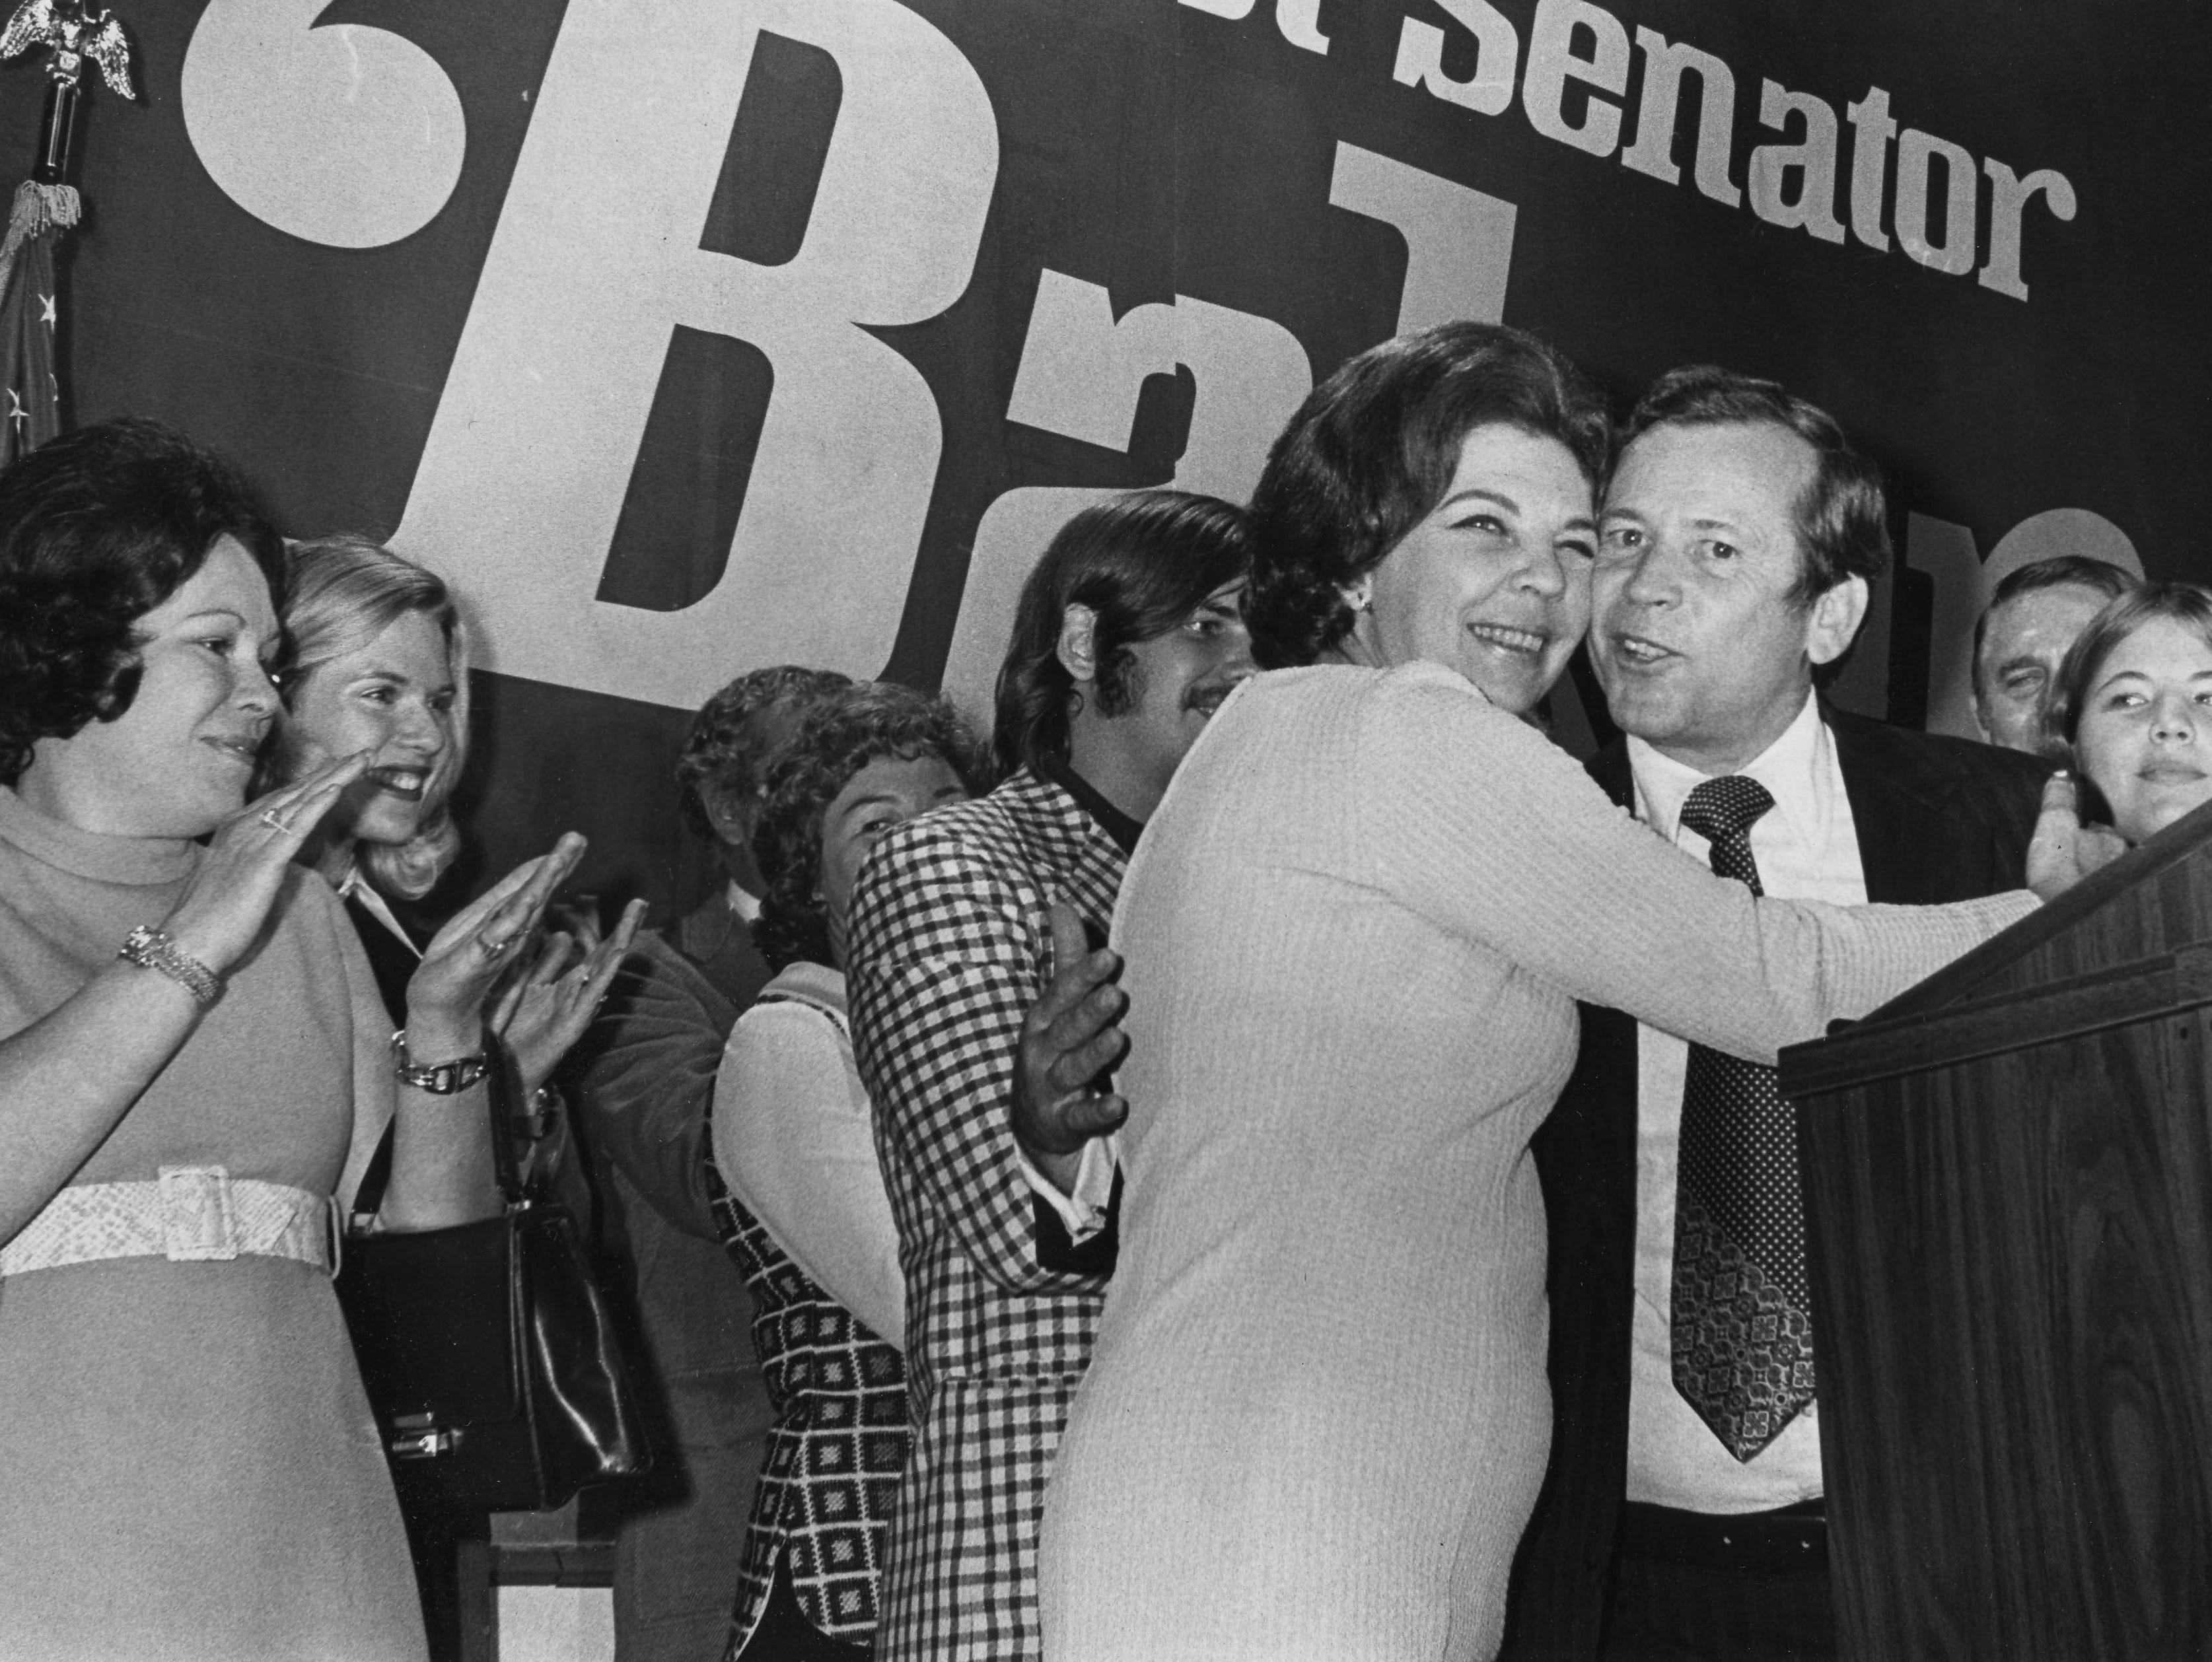 U.S. Sen. Howard H. Baker Jr. and his wife, Joy, celebrate his election to a second term Nov. 7, 1972, at the Hyatt Regency. Baker defeated U.S. Rep. Ray Blanton in a landslide. Closest to the Bakers are their son, Darek, left, and daughter Cynthia, right.